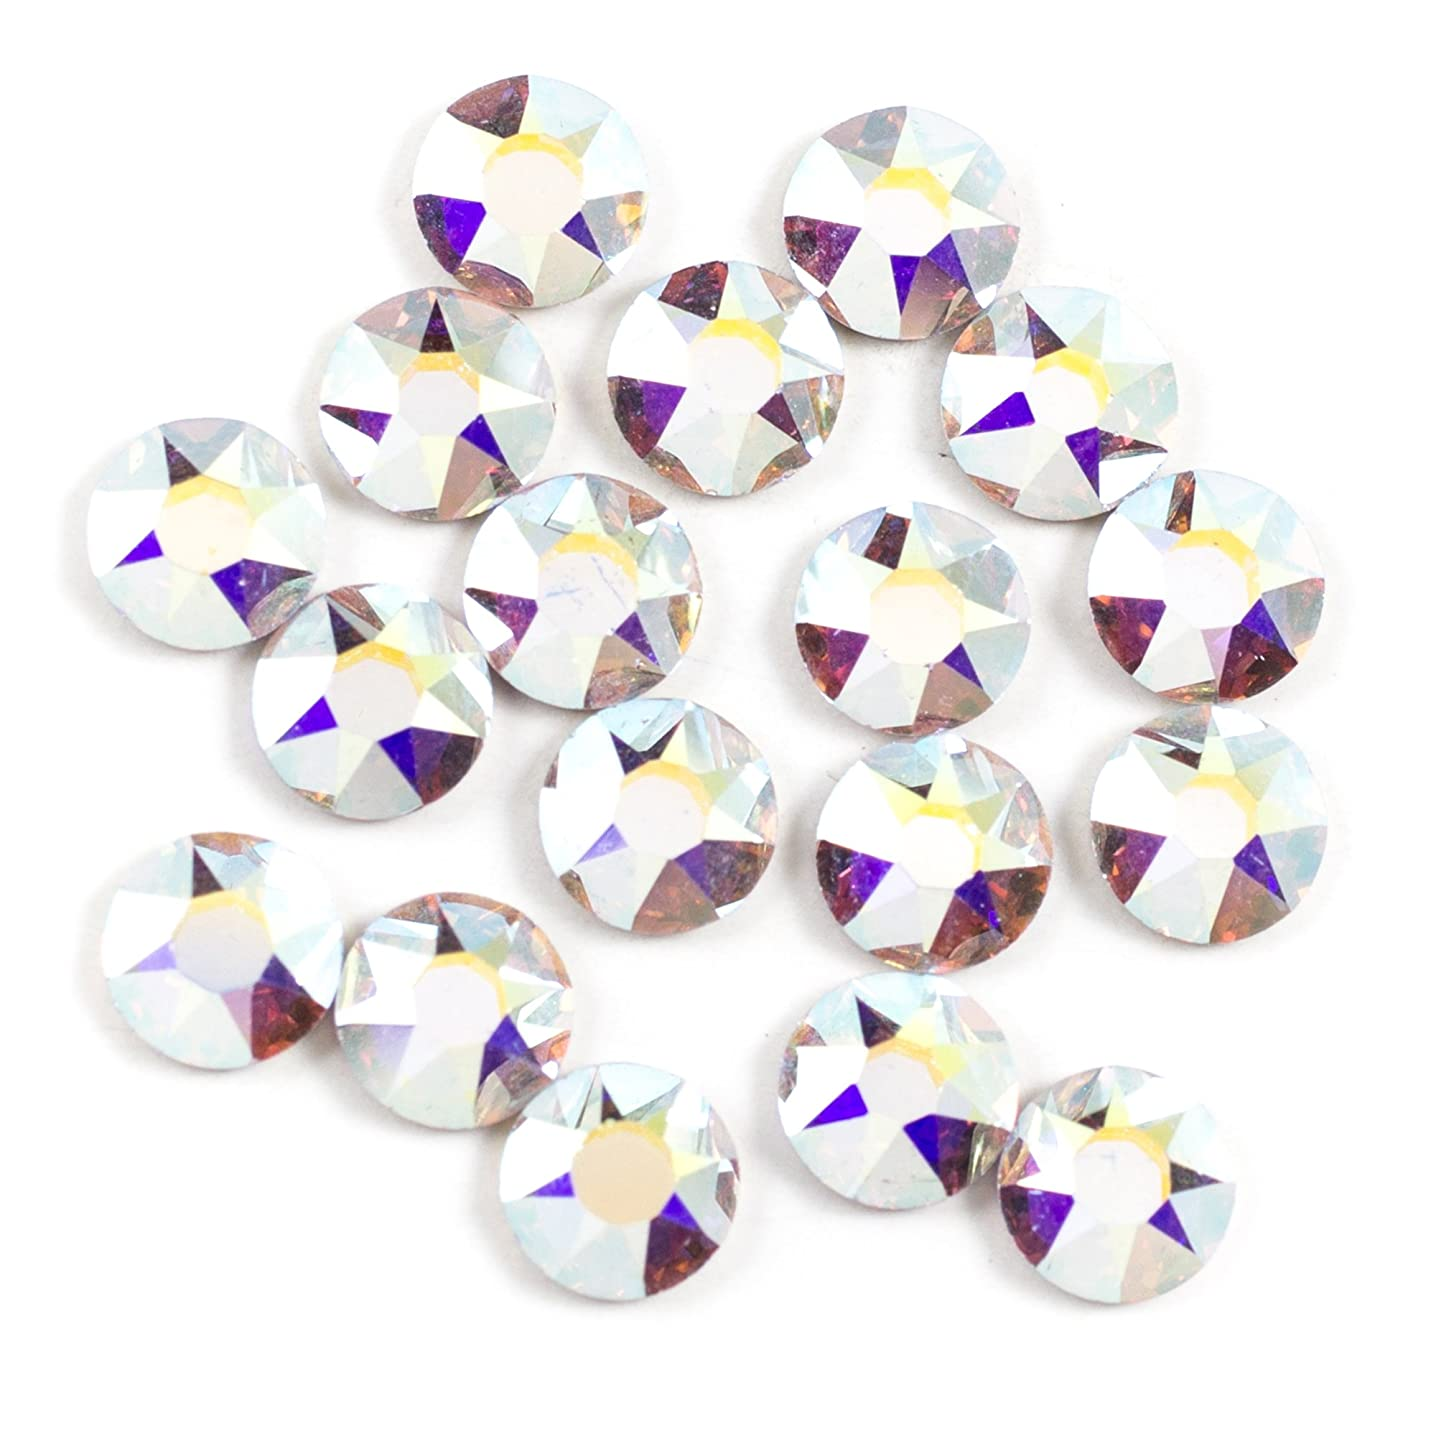 Swarovski - Create Your Style Flatback 5mm AB 3 packages of 18 Piece (54 Total Crystals)